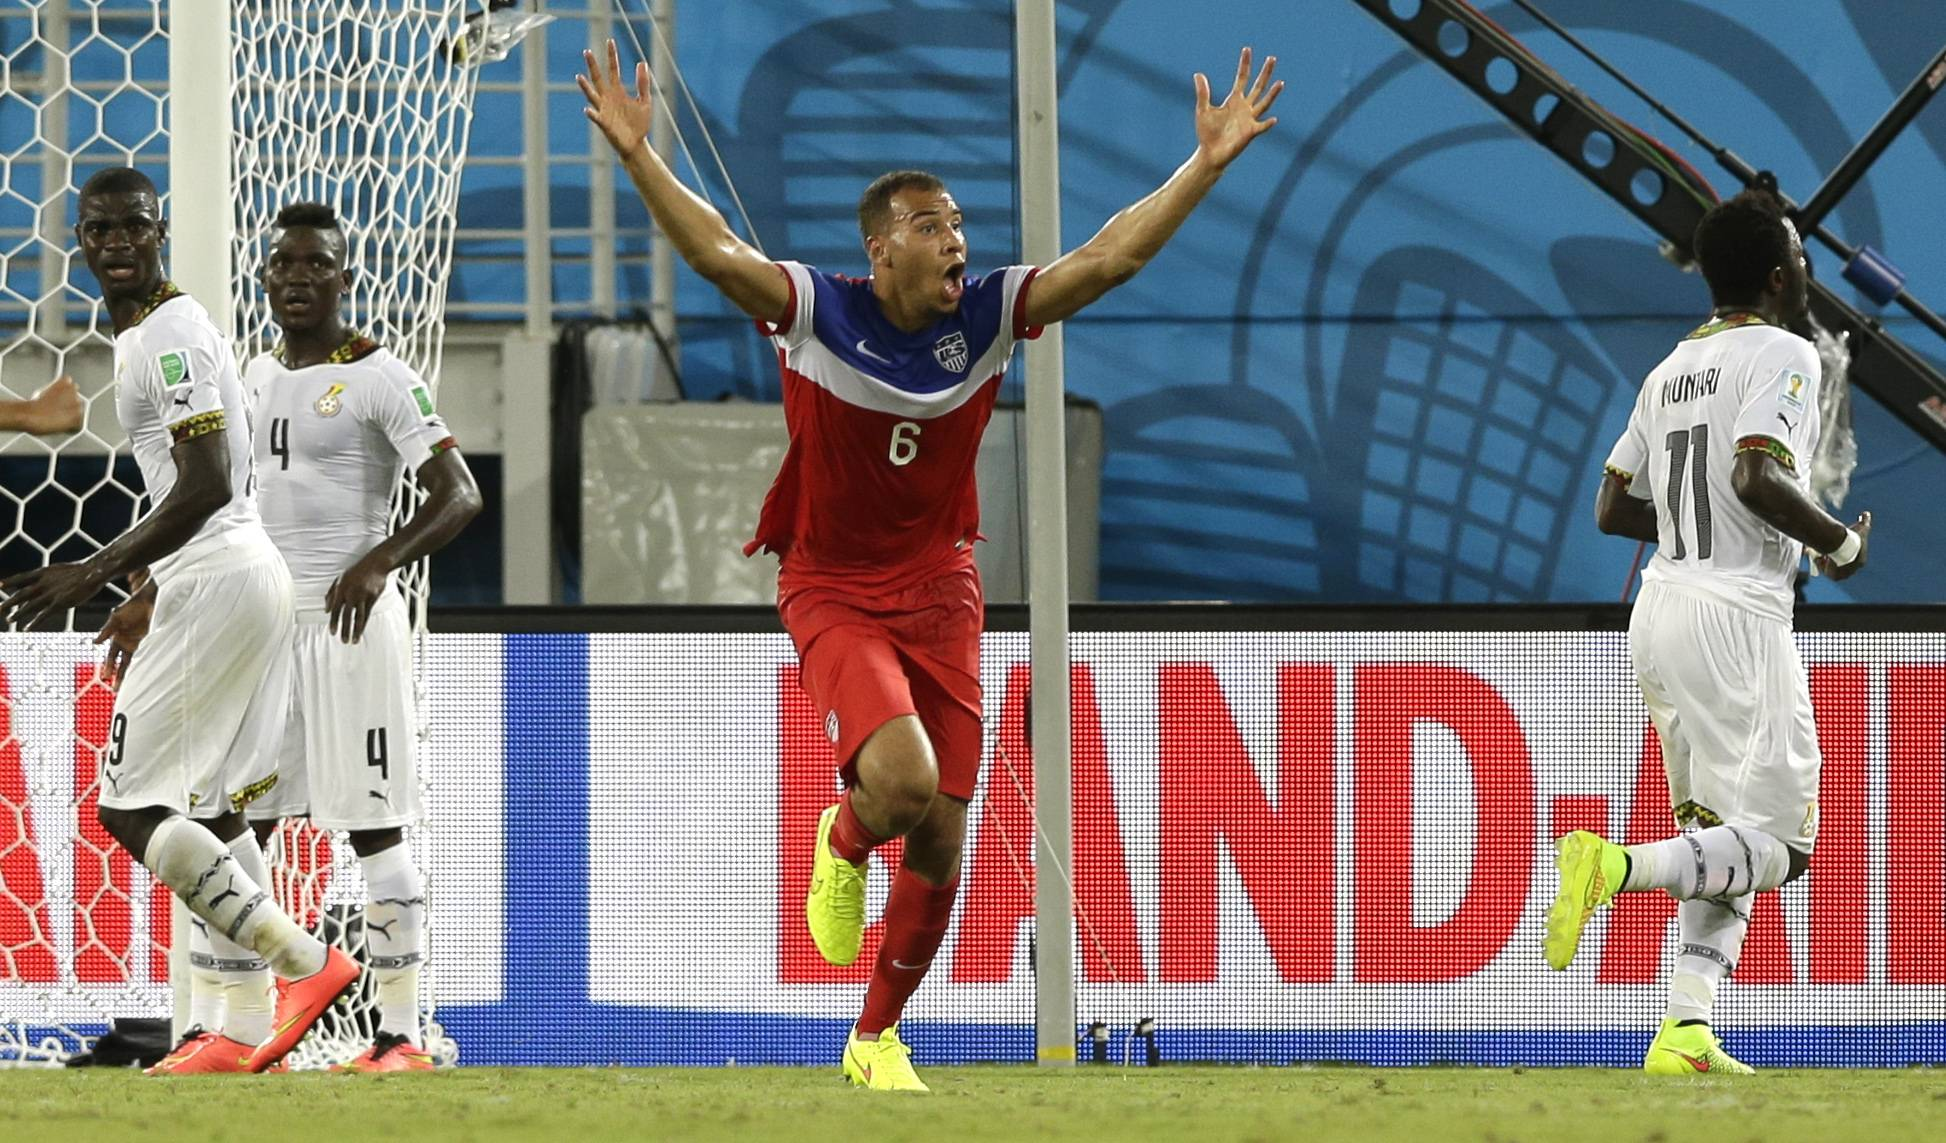 Strong start, but U.S. will have to be better